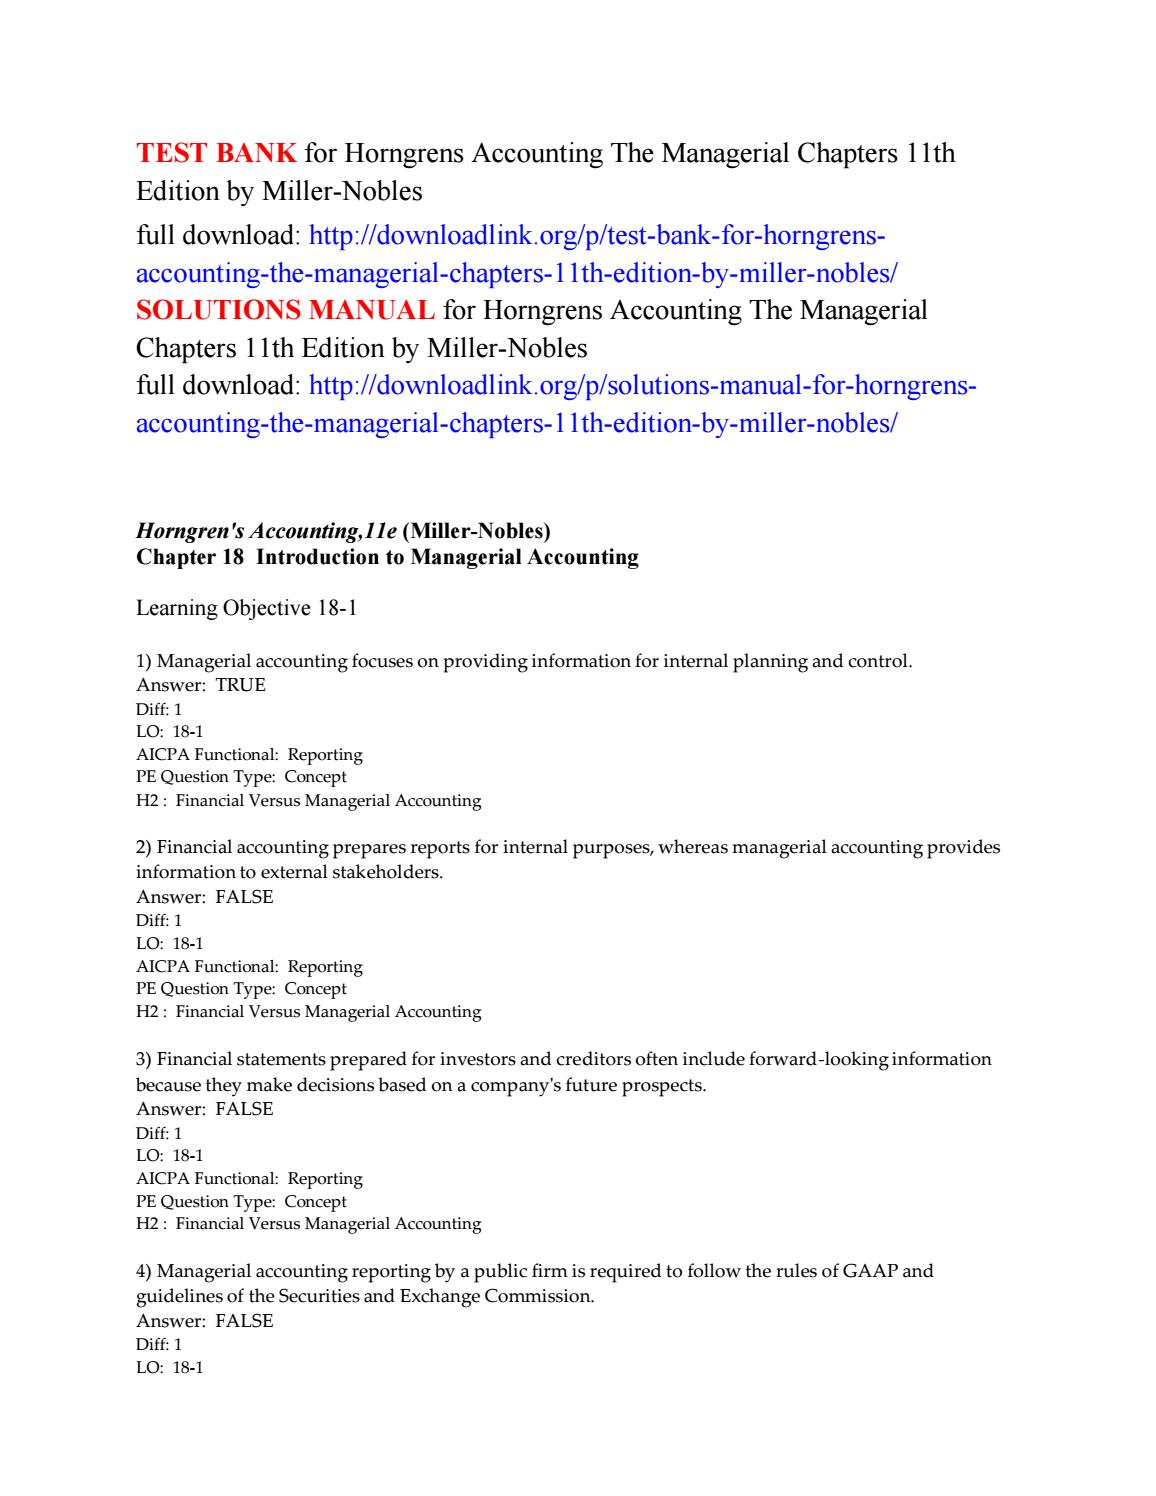 Test bank for horngrens accounting the managerial chapters 11th edition by  miller nobles by Jarvis222 - issuu